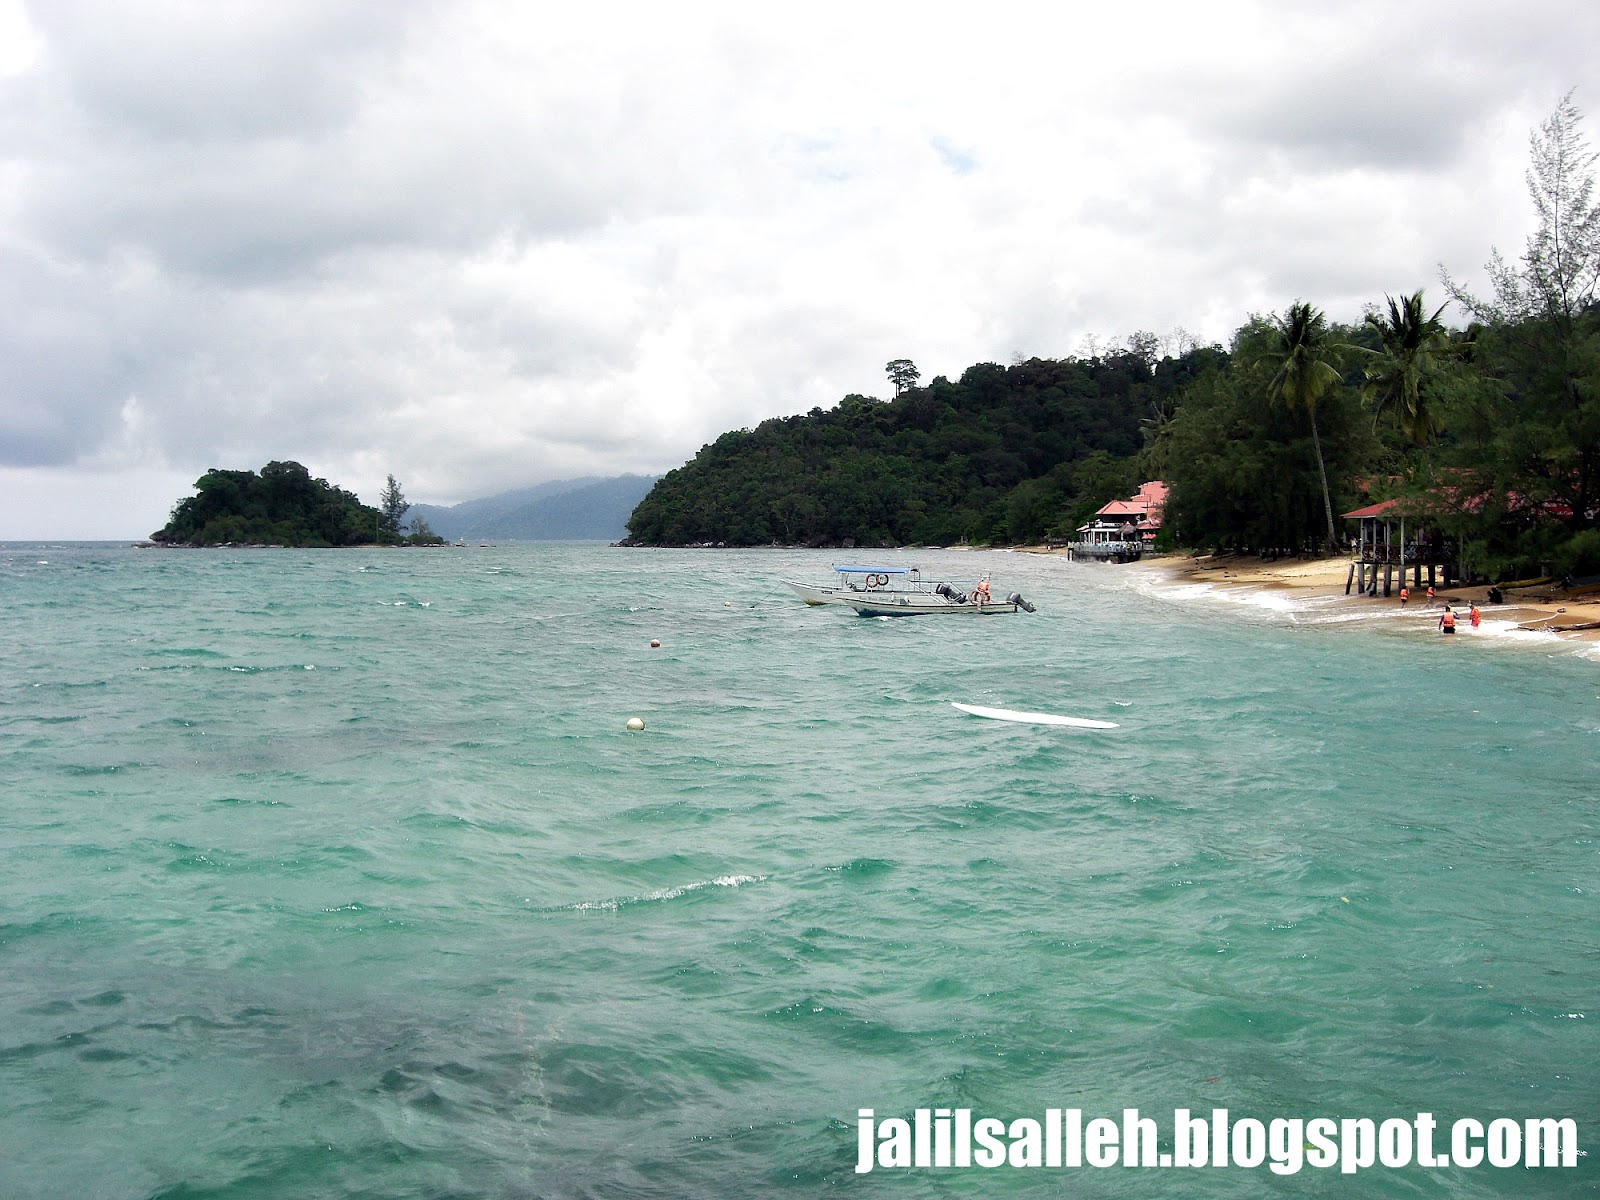 a trip to pulau tioman essay Trip pulau tioman submitted by: submitted by gamekyu view full essay it's 6pm on a friday and we are on our way to penang for a short break th picked up the kids at school and reached home about 4pm just now.